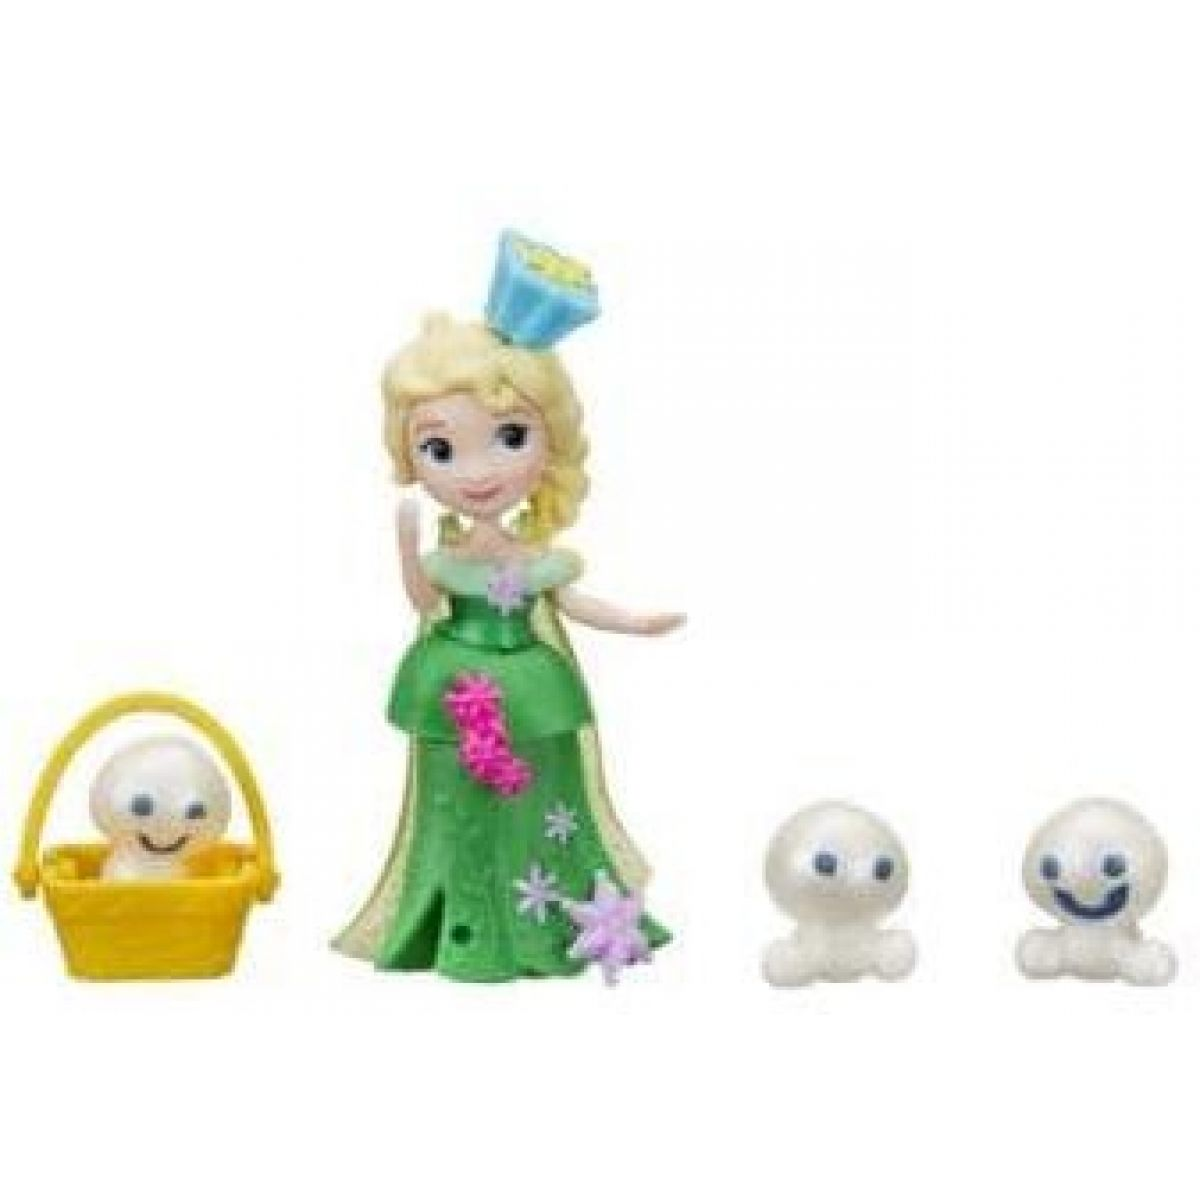 Hasbro Disney Frozen Little Kingdom Mini panenka s kamarádem Elsa a Snowfies